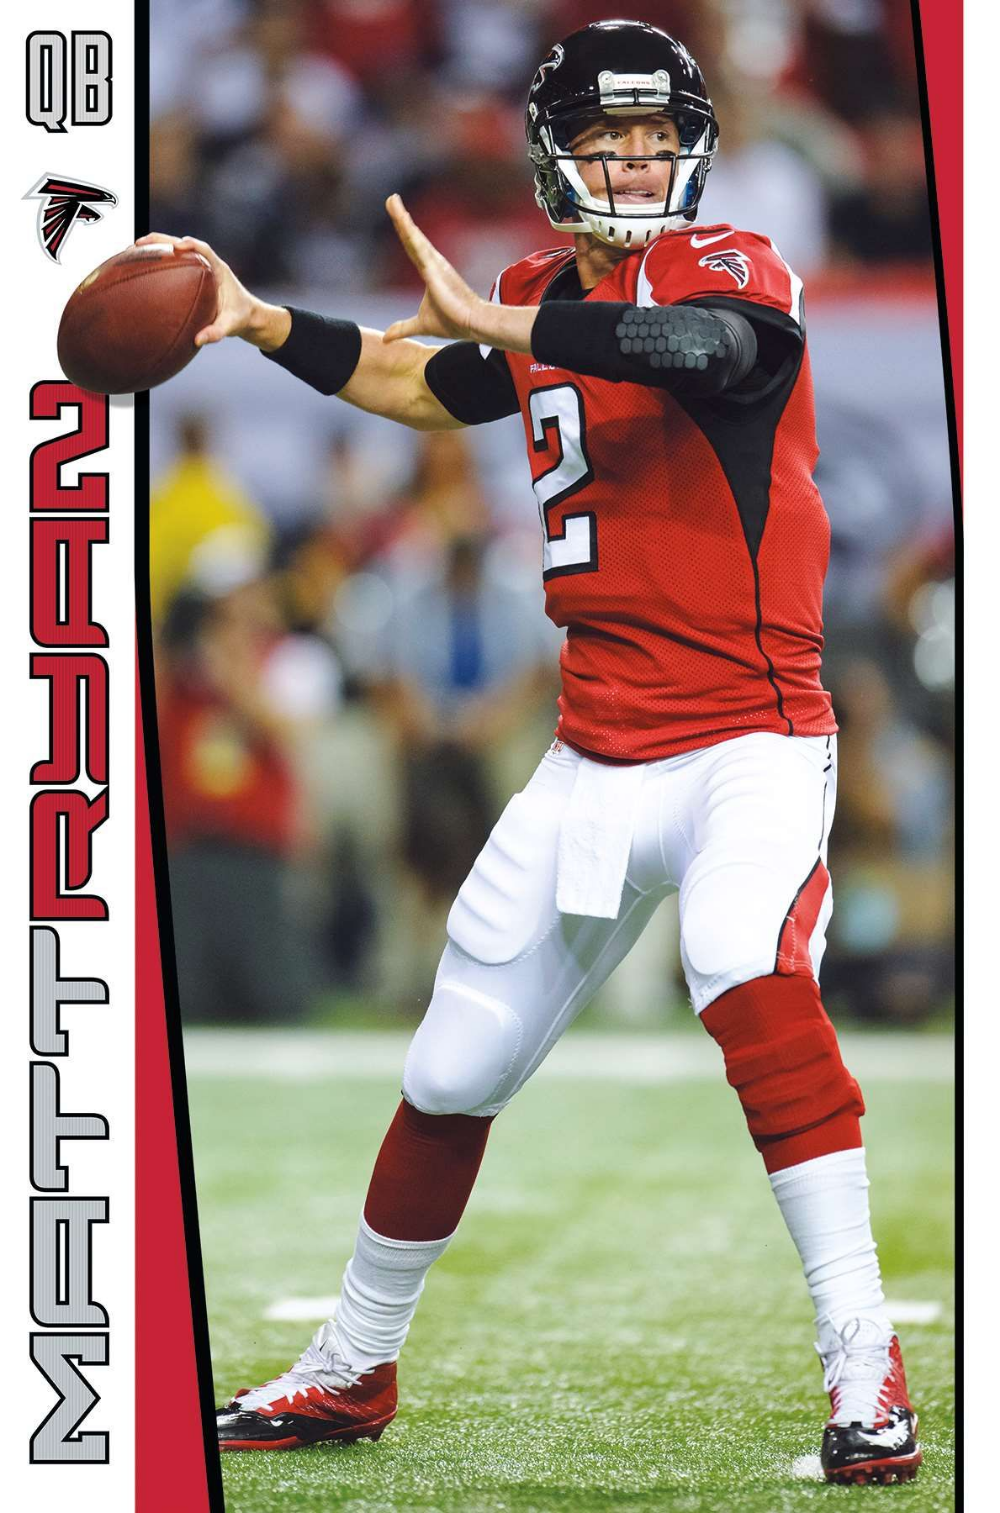 Nfl Atlanta Falcons Matt Ryan 14 Atlanta Falcons Matt Ryan Atlanta Falcons Football Atlanta Falcons